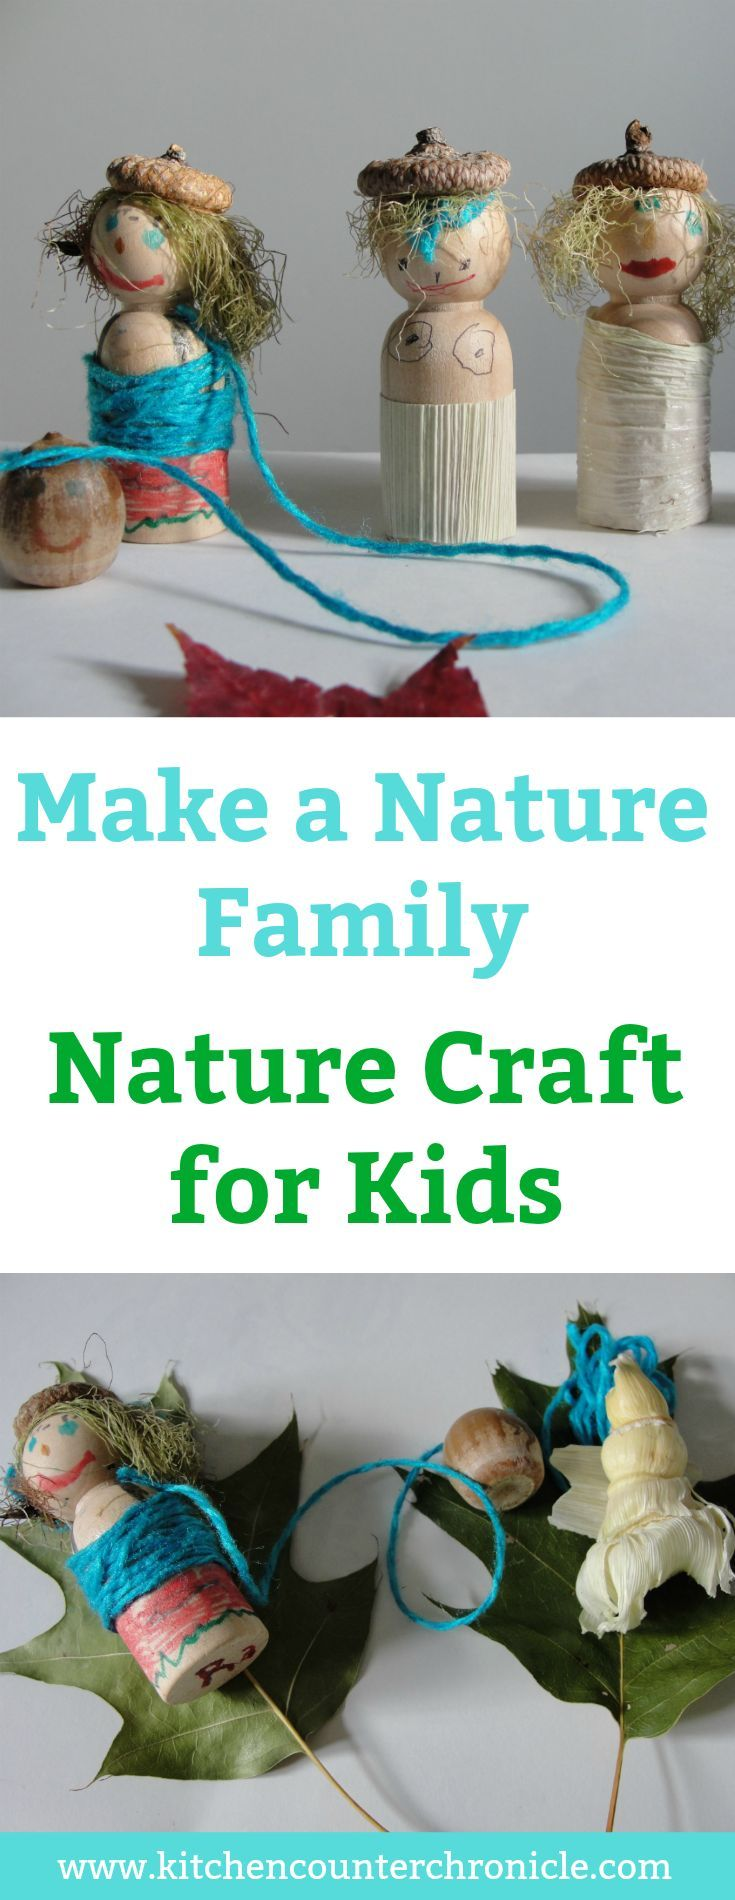 Make A Lovely Nature Family – Nature Craft for Kids